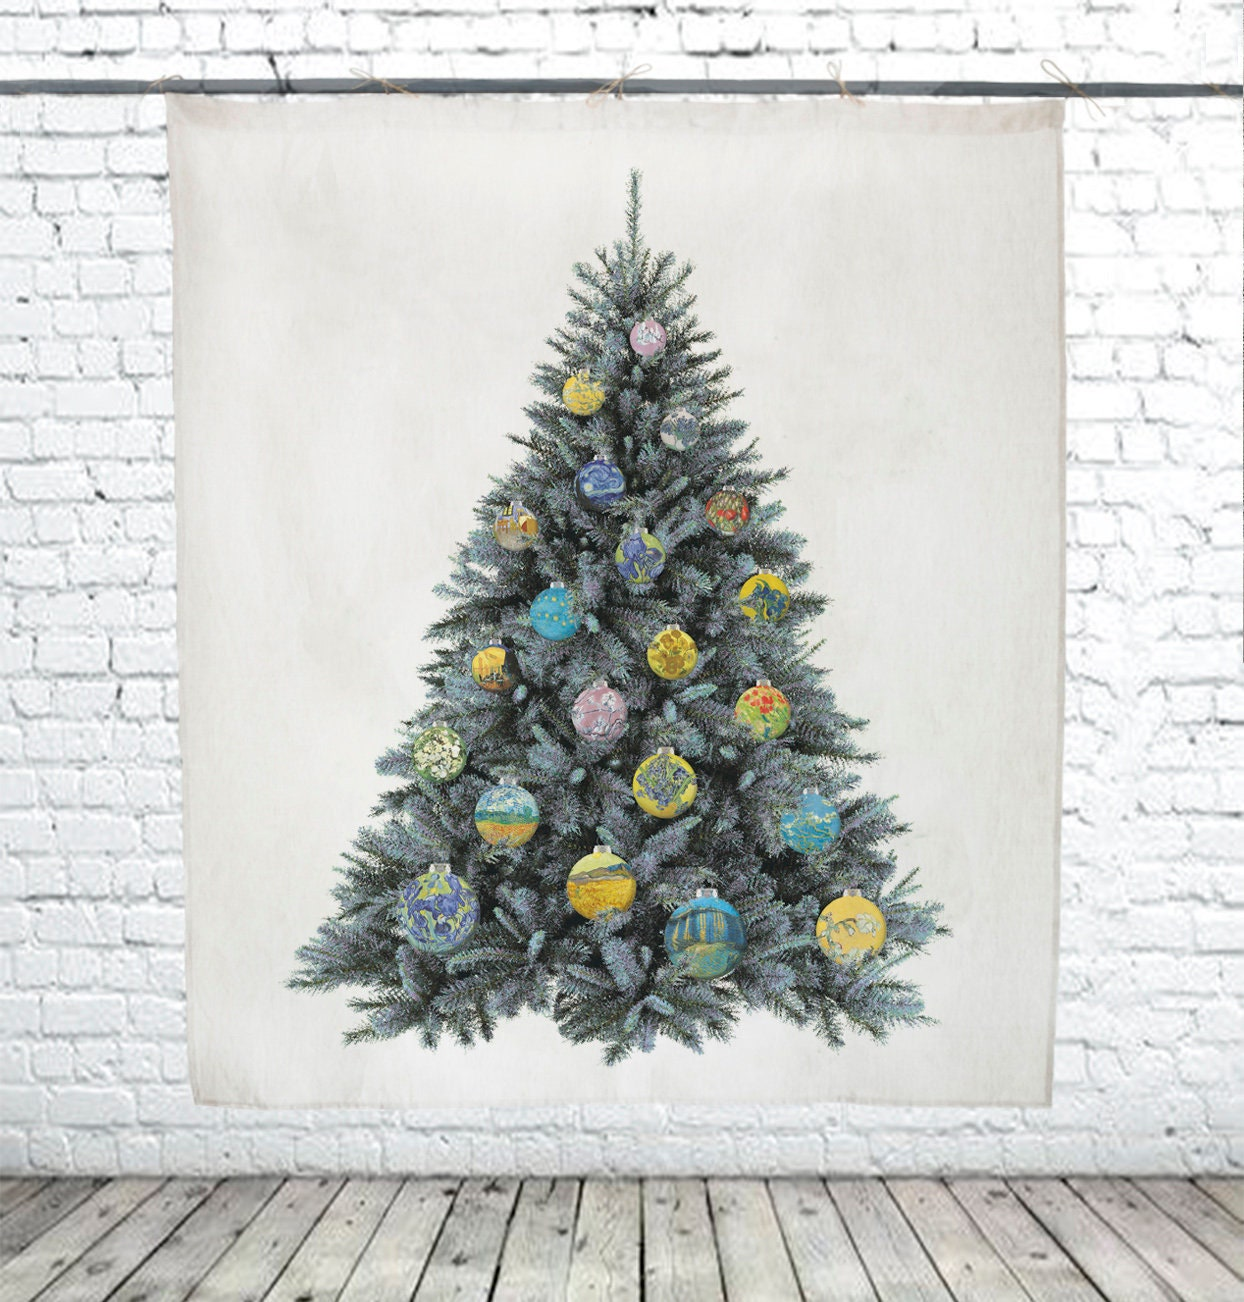 Tapestry, Van Gogh, tree decor, wall tapestry, fir tapestry